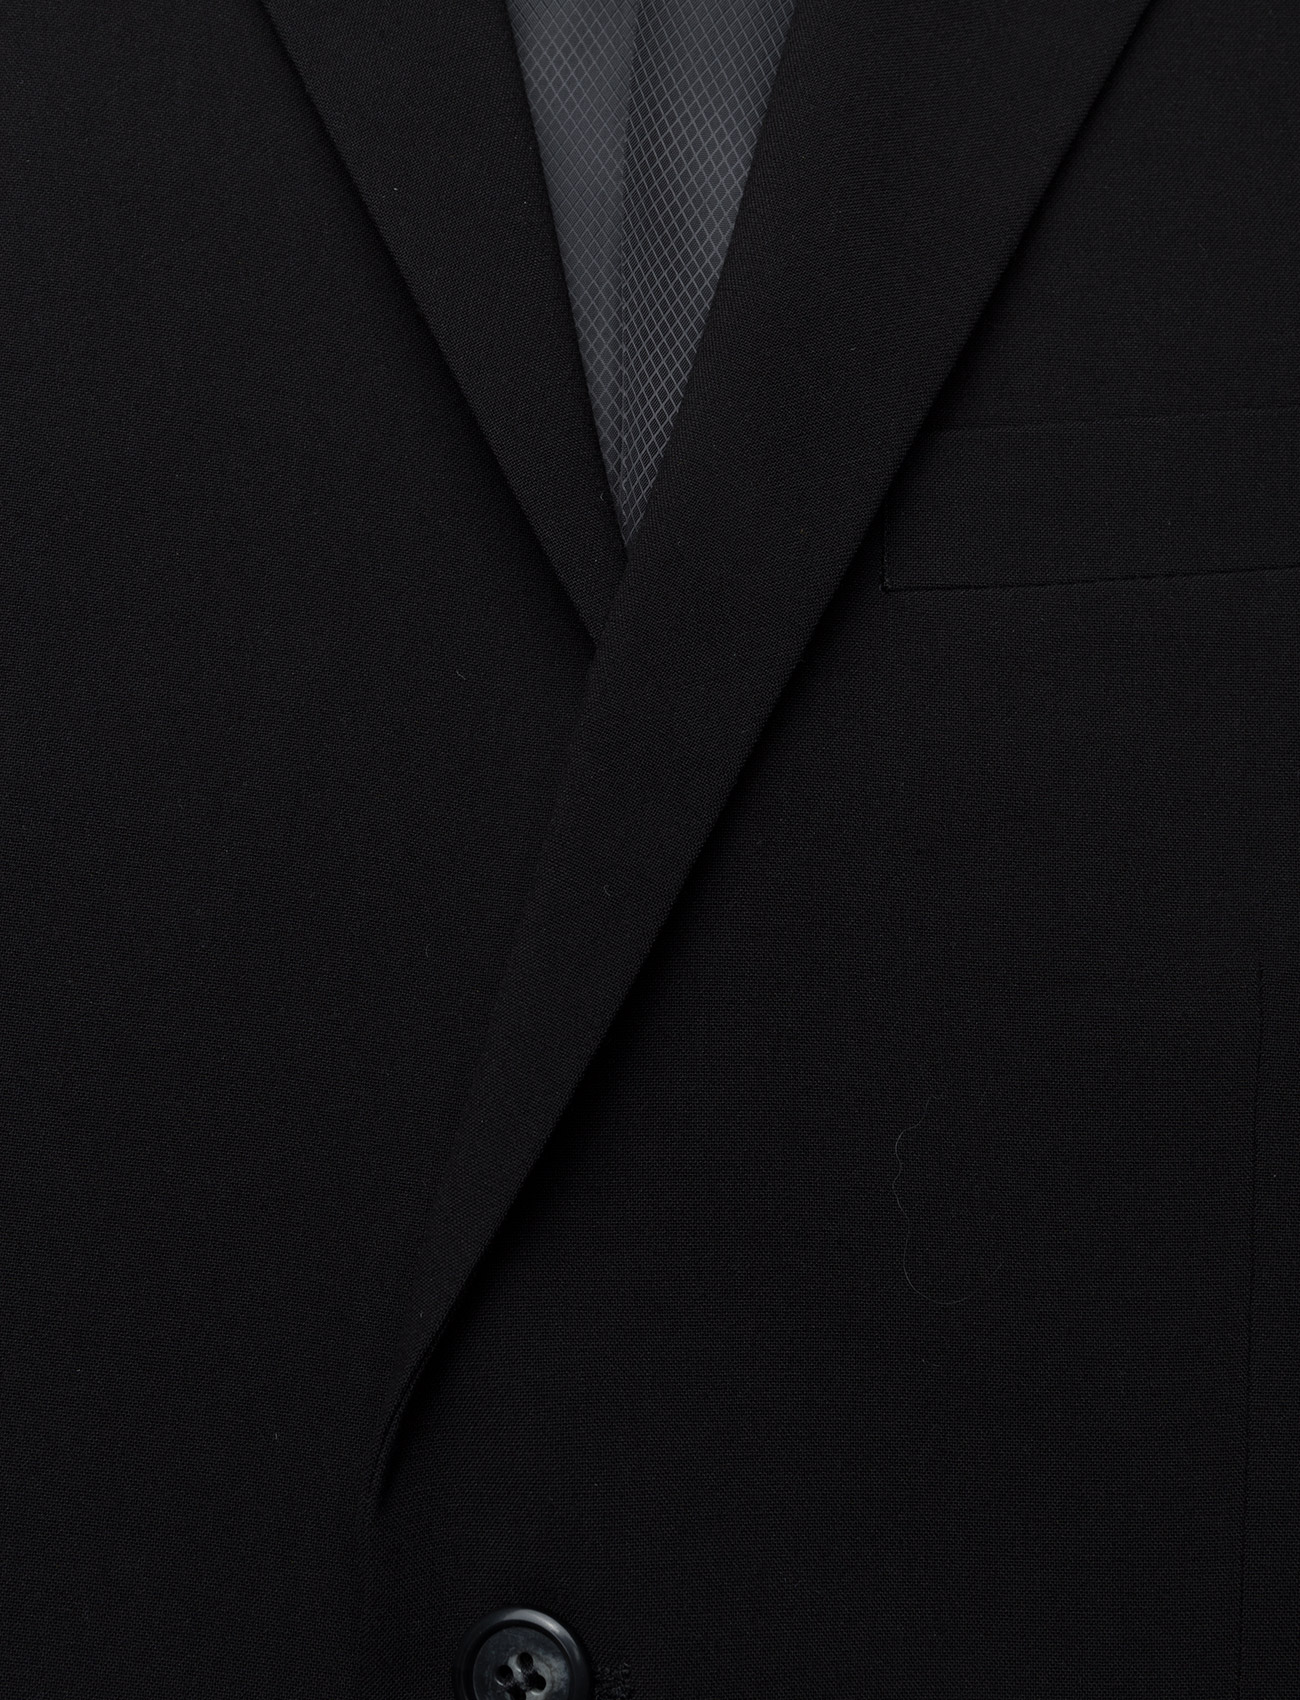 Lindbergh - Mens suit - single breasted suits - black